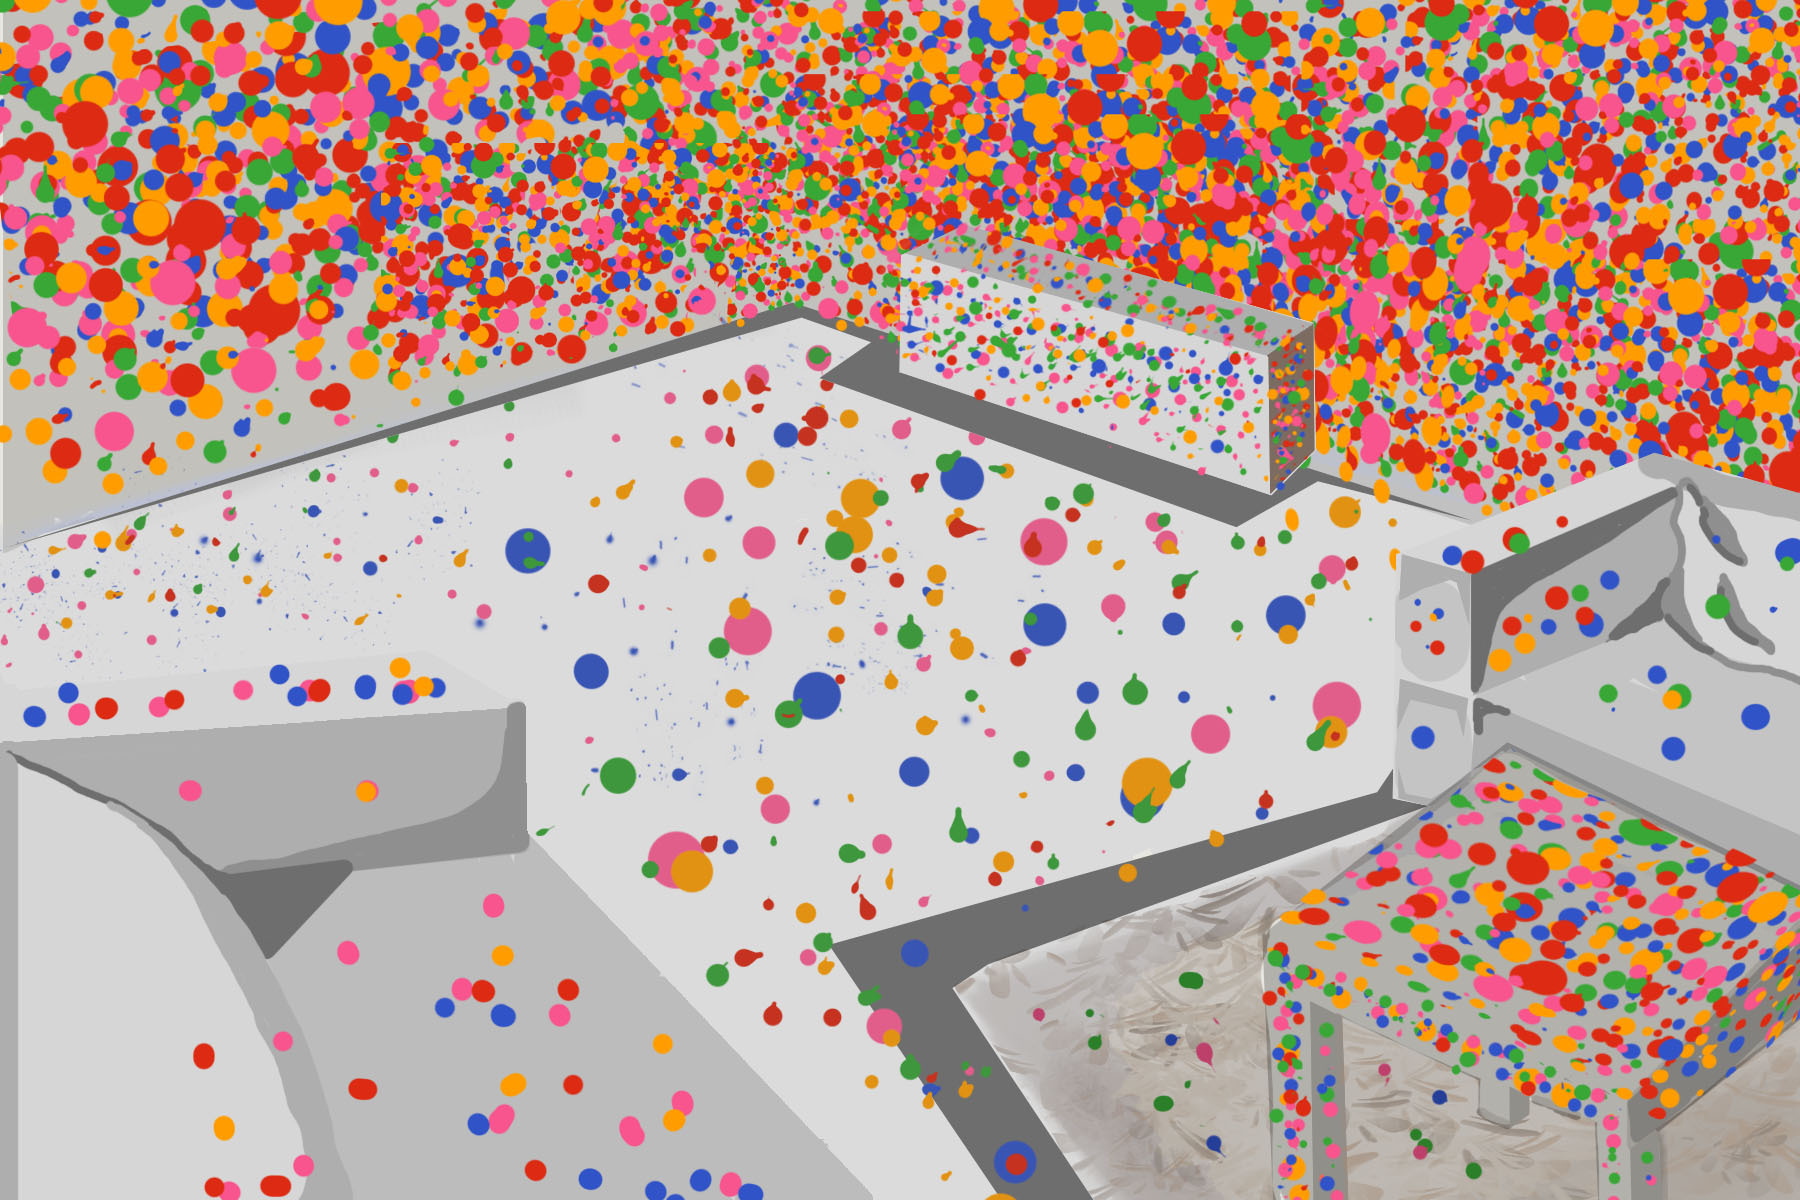 An artistic depiction of Kusama's 3D artwork of a room covered in polka dots.